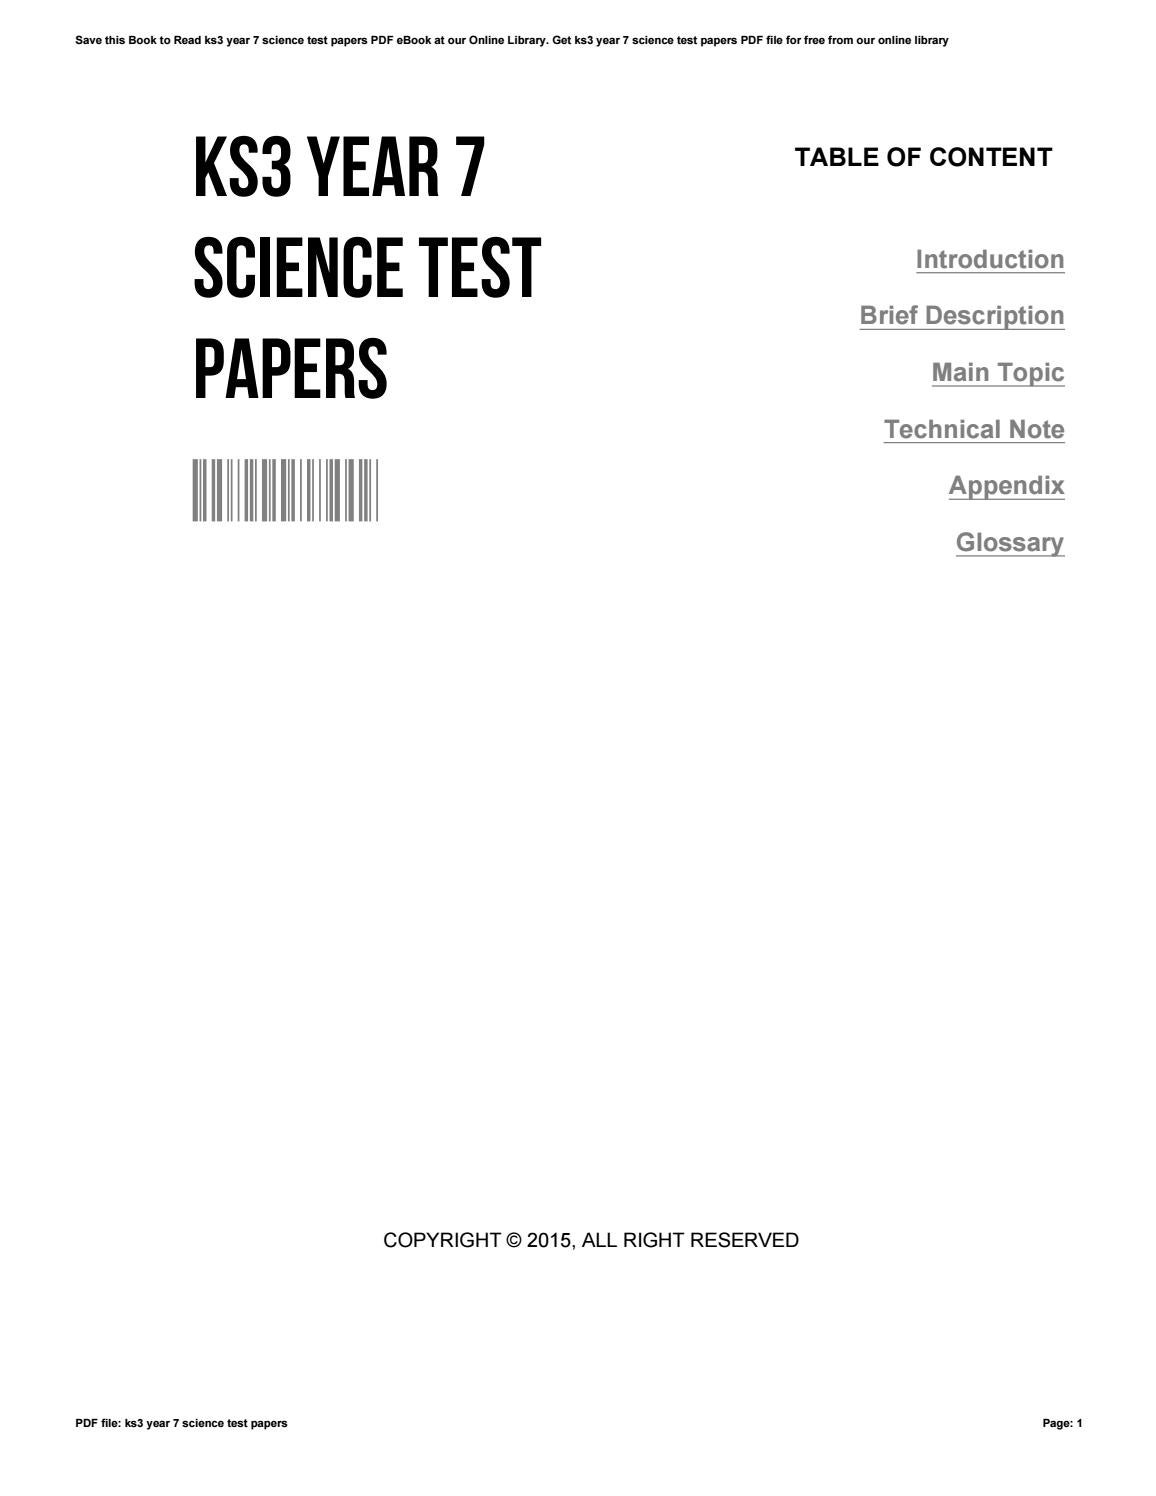 Ks3 year 7 science test papers by MaureenHillman3843 - issuu